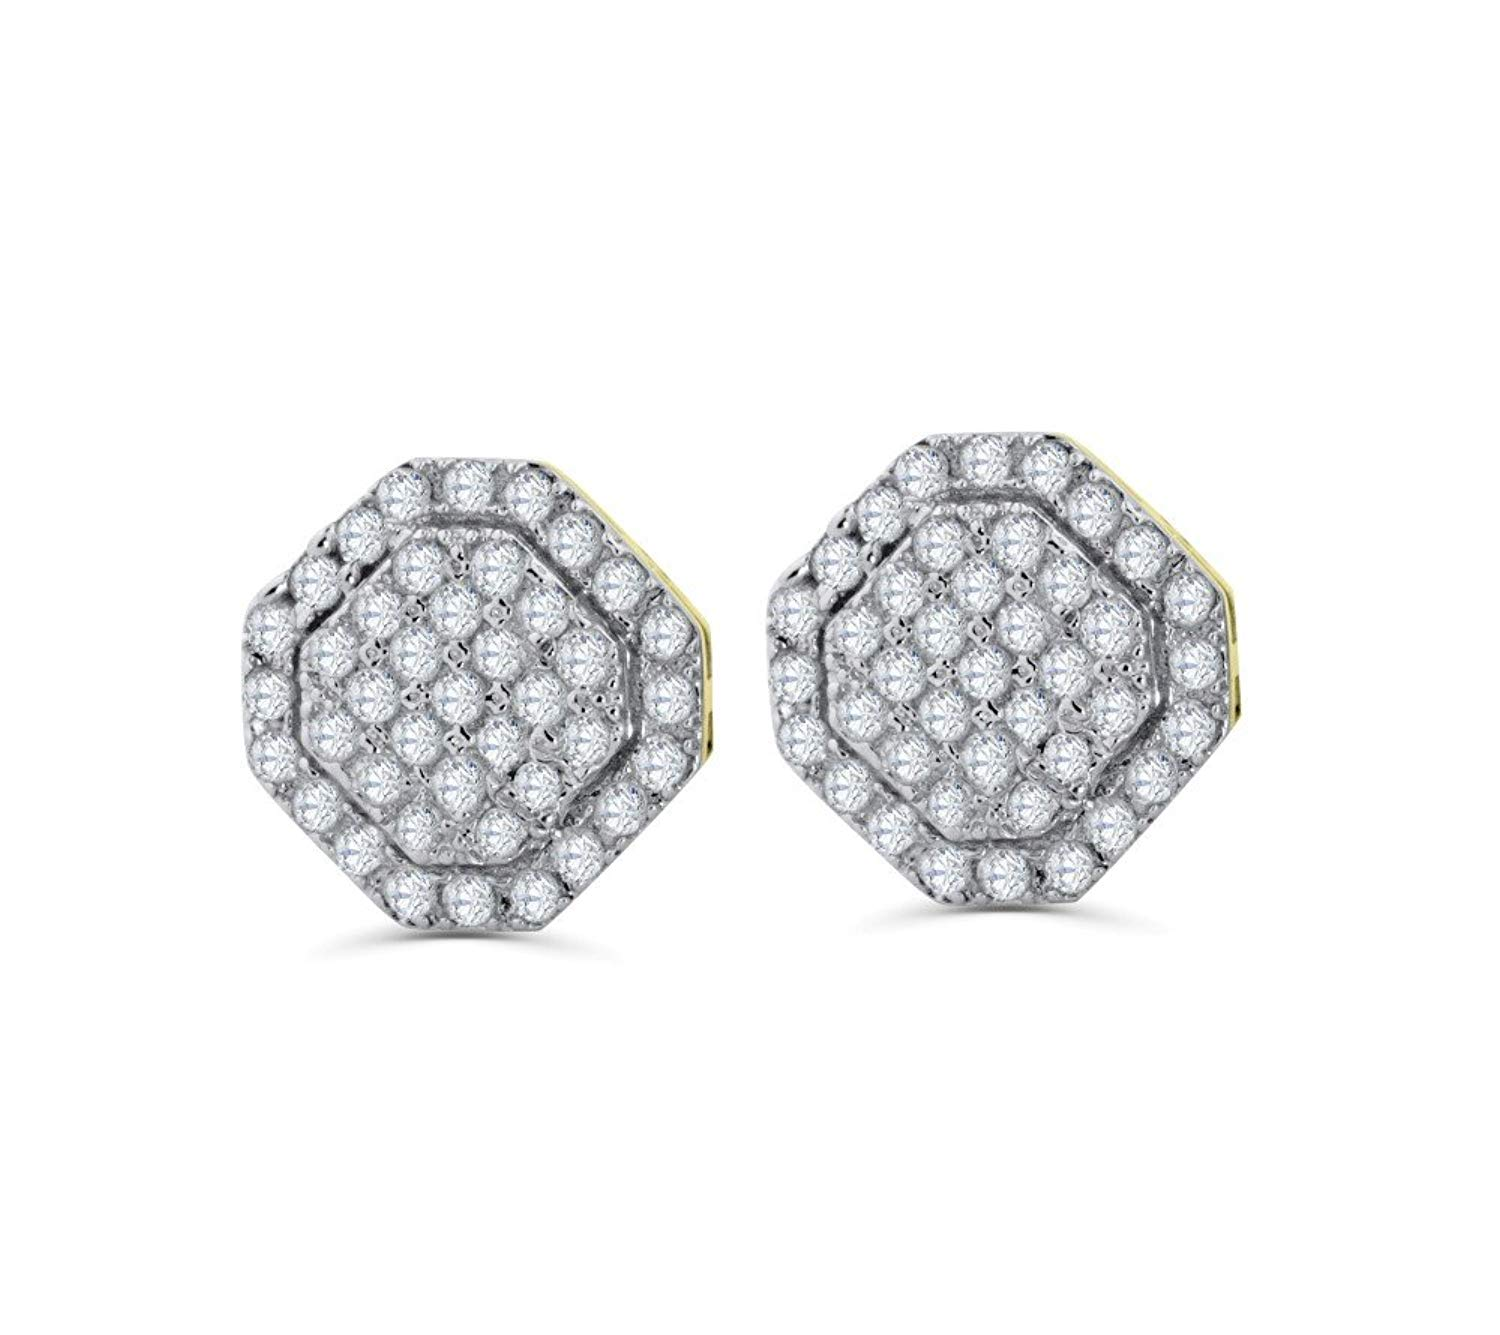 Get Quotations 10k Gold Diamond Earrings Mens Or Womnes 7mm Stop Sign Back 1 4ctw